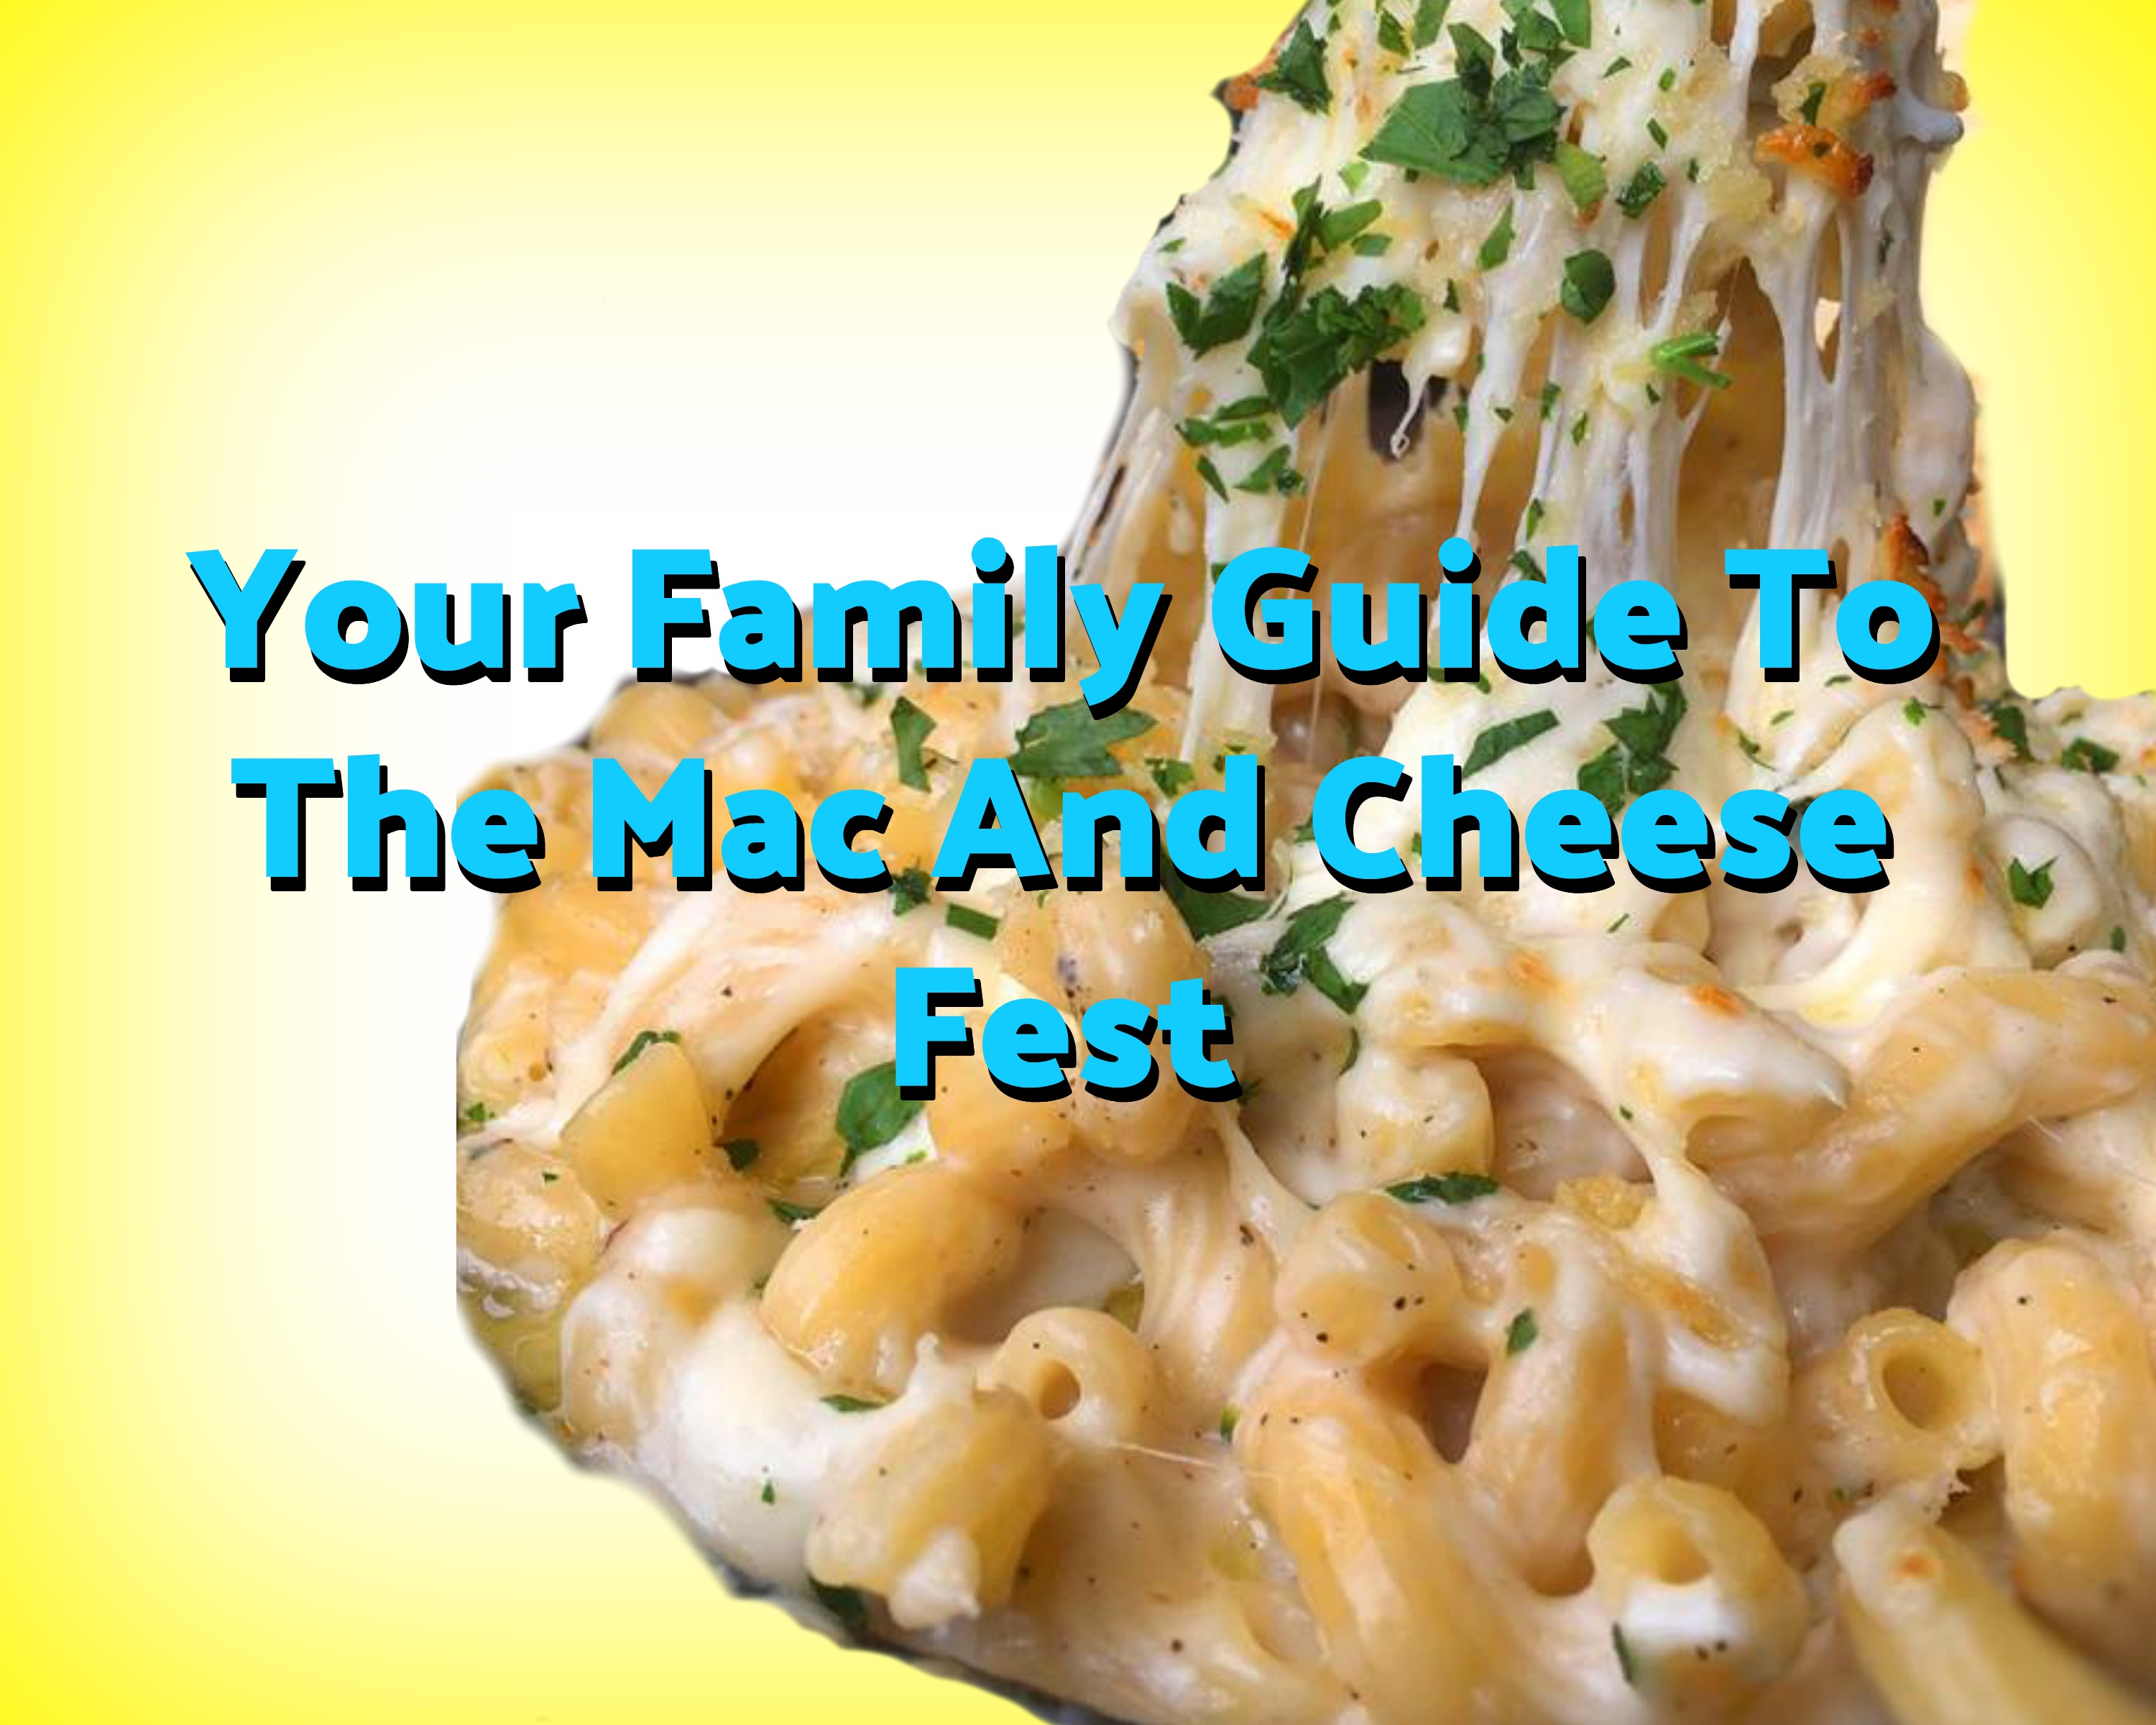 Mac And Cheese Fest: Everything You Need To Know